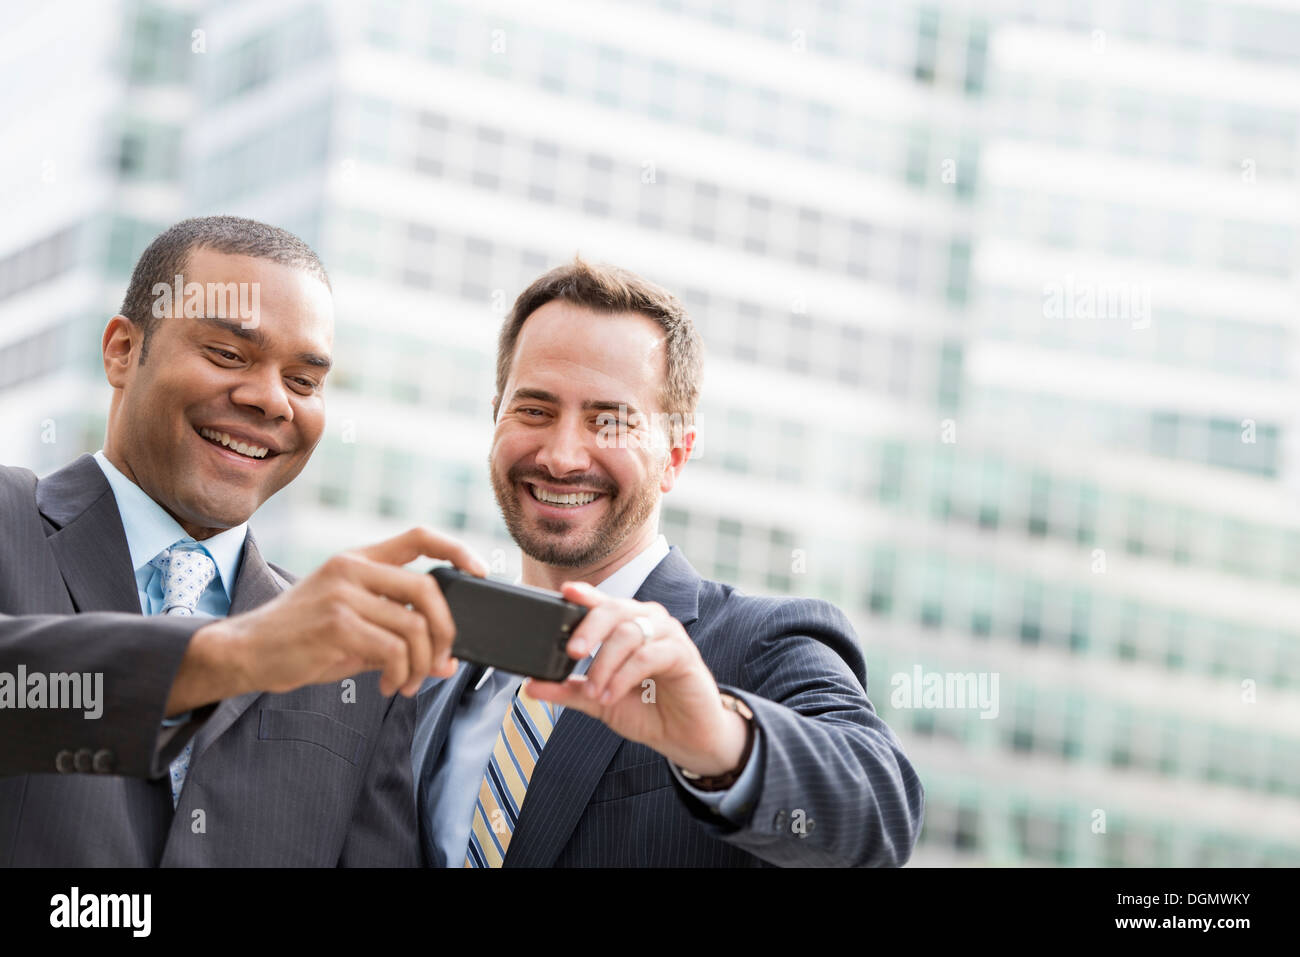 City. Two men in business suits, looking at a smart phone, smiling. - Stock Image